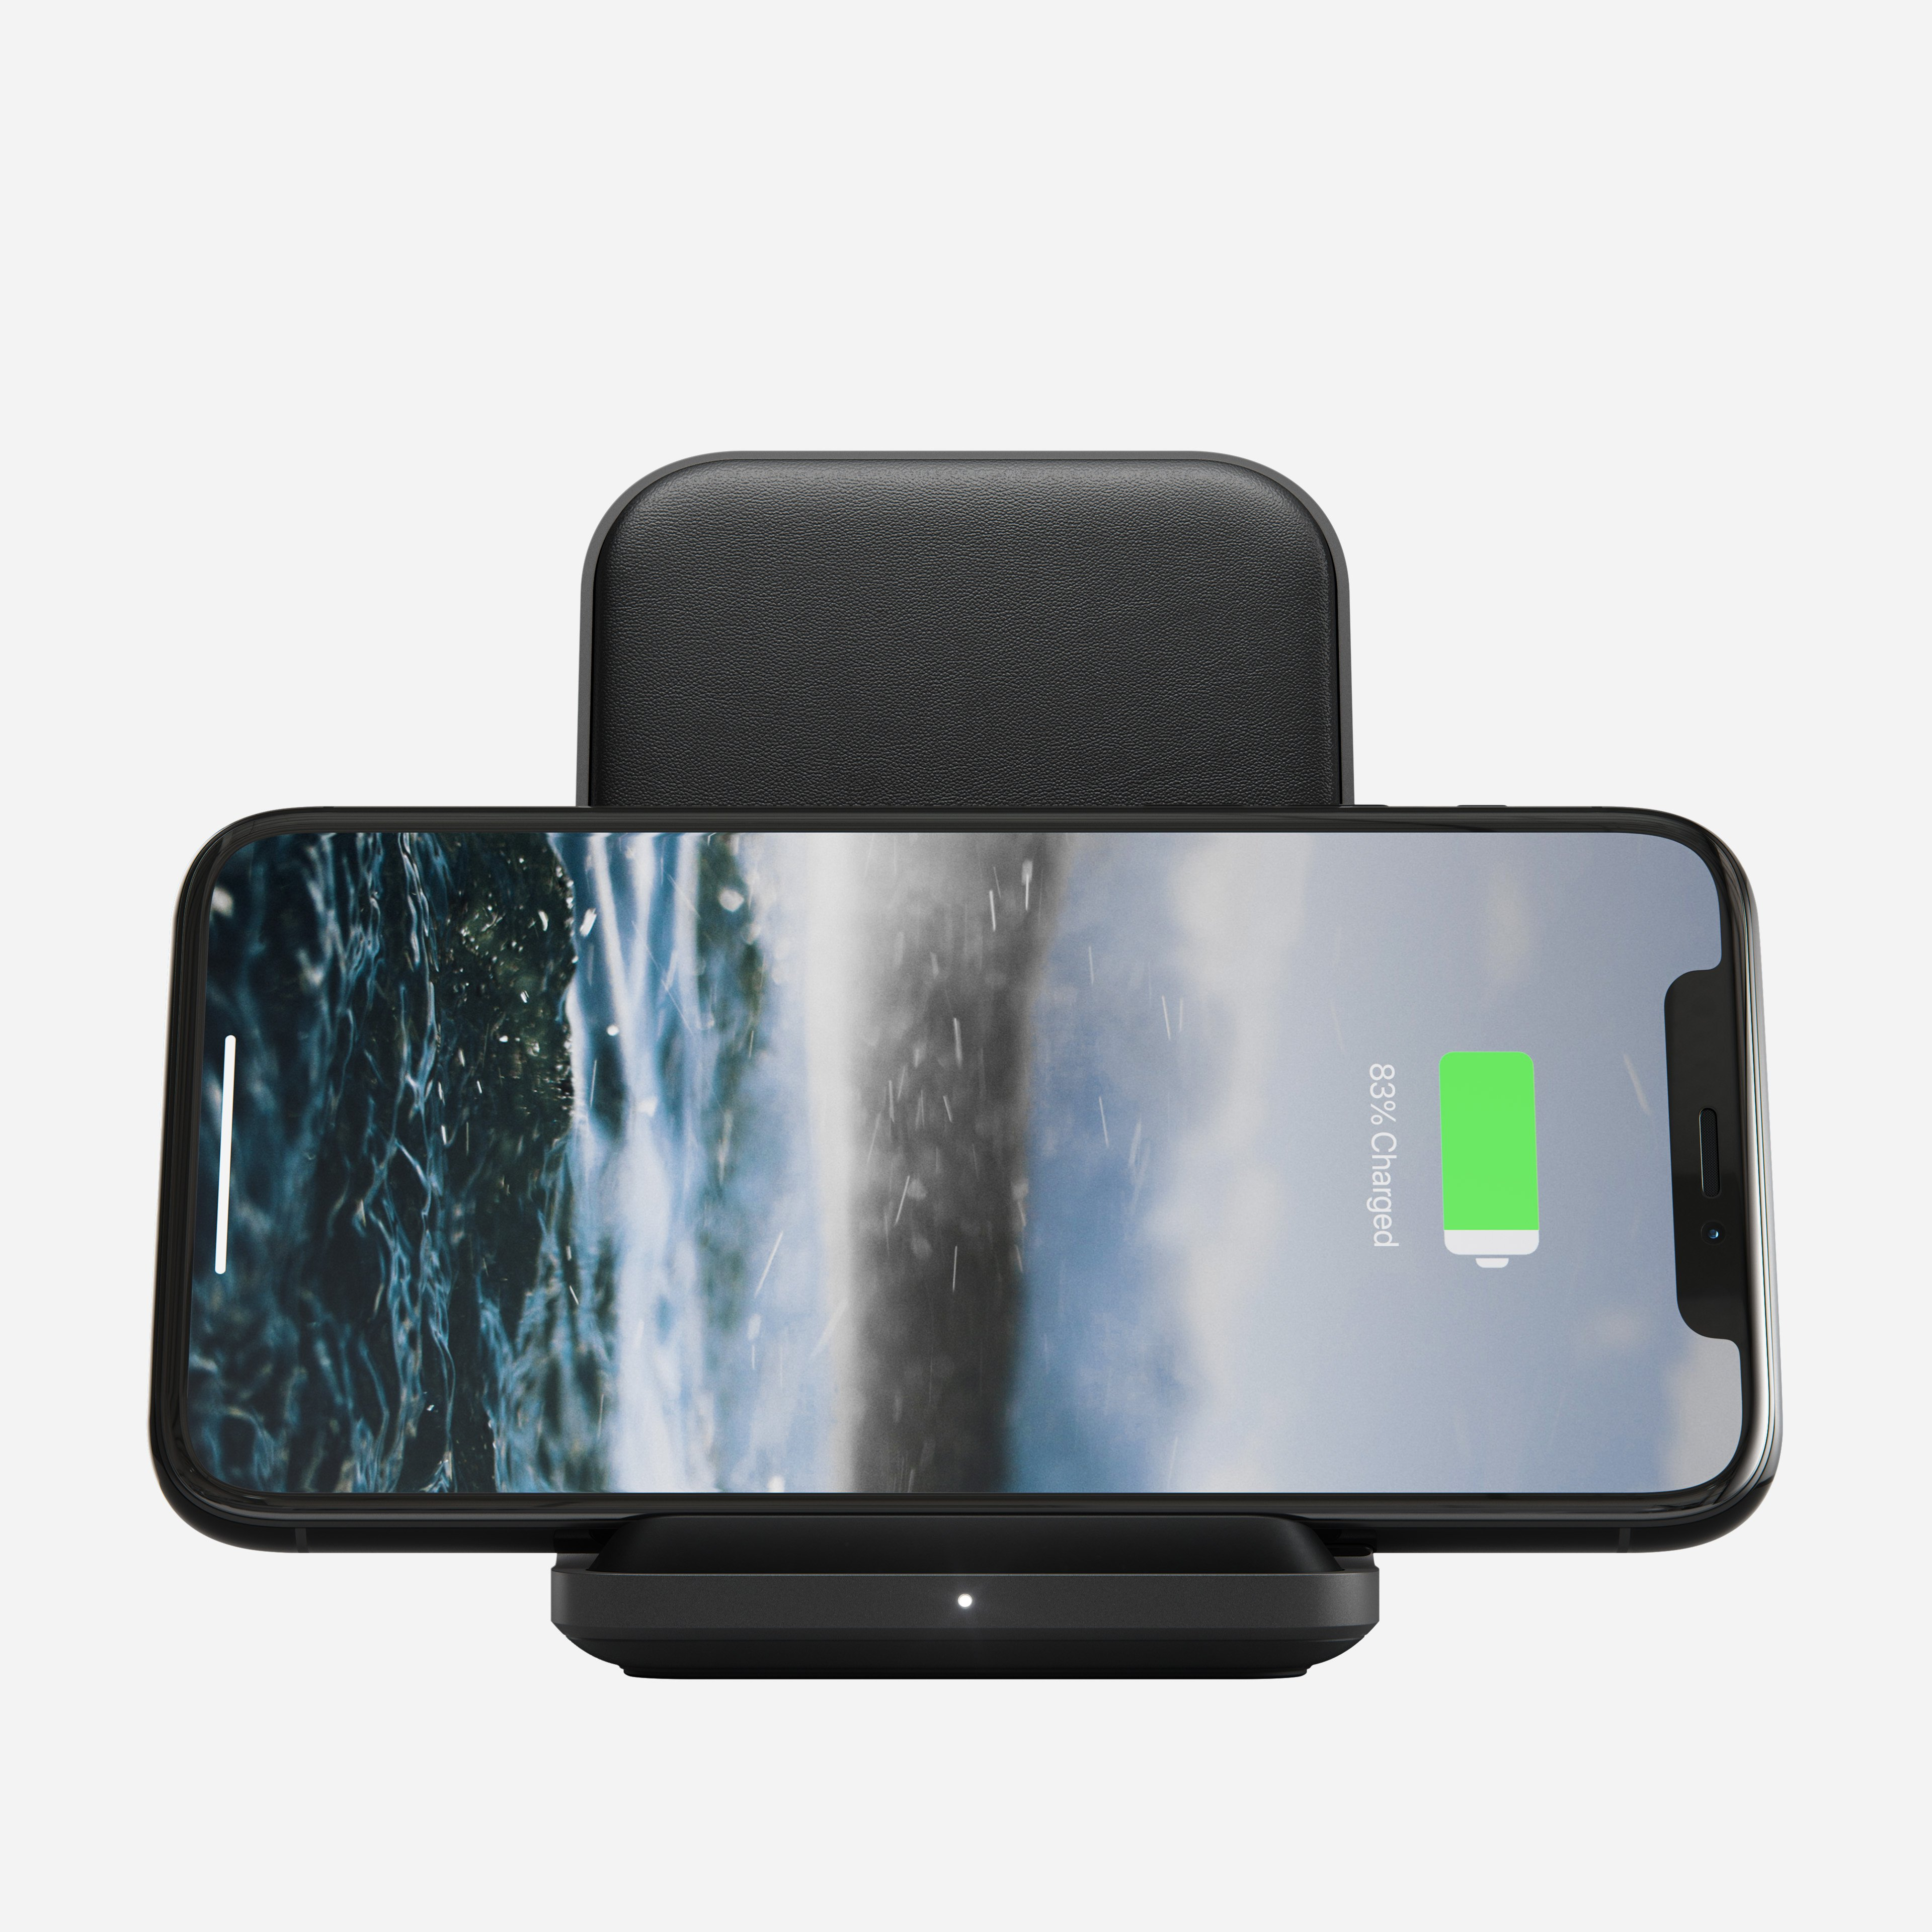 Base Station Stand with iPhone charging horizontally